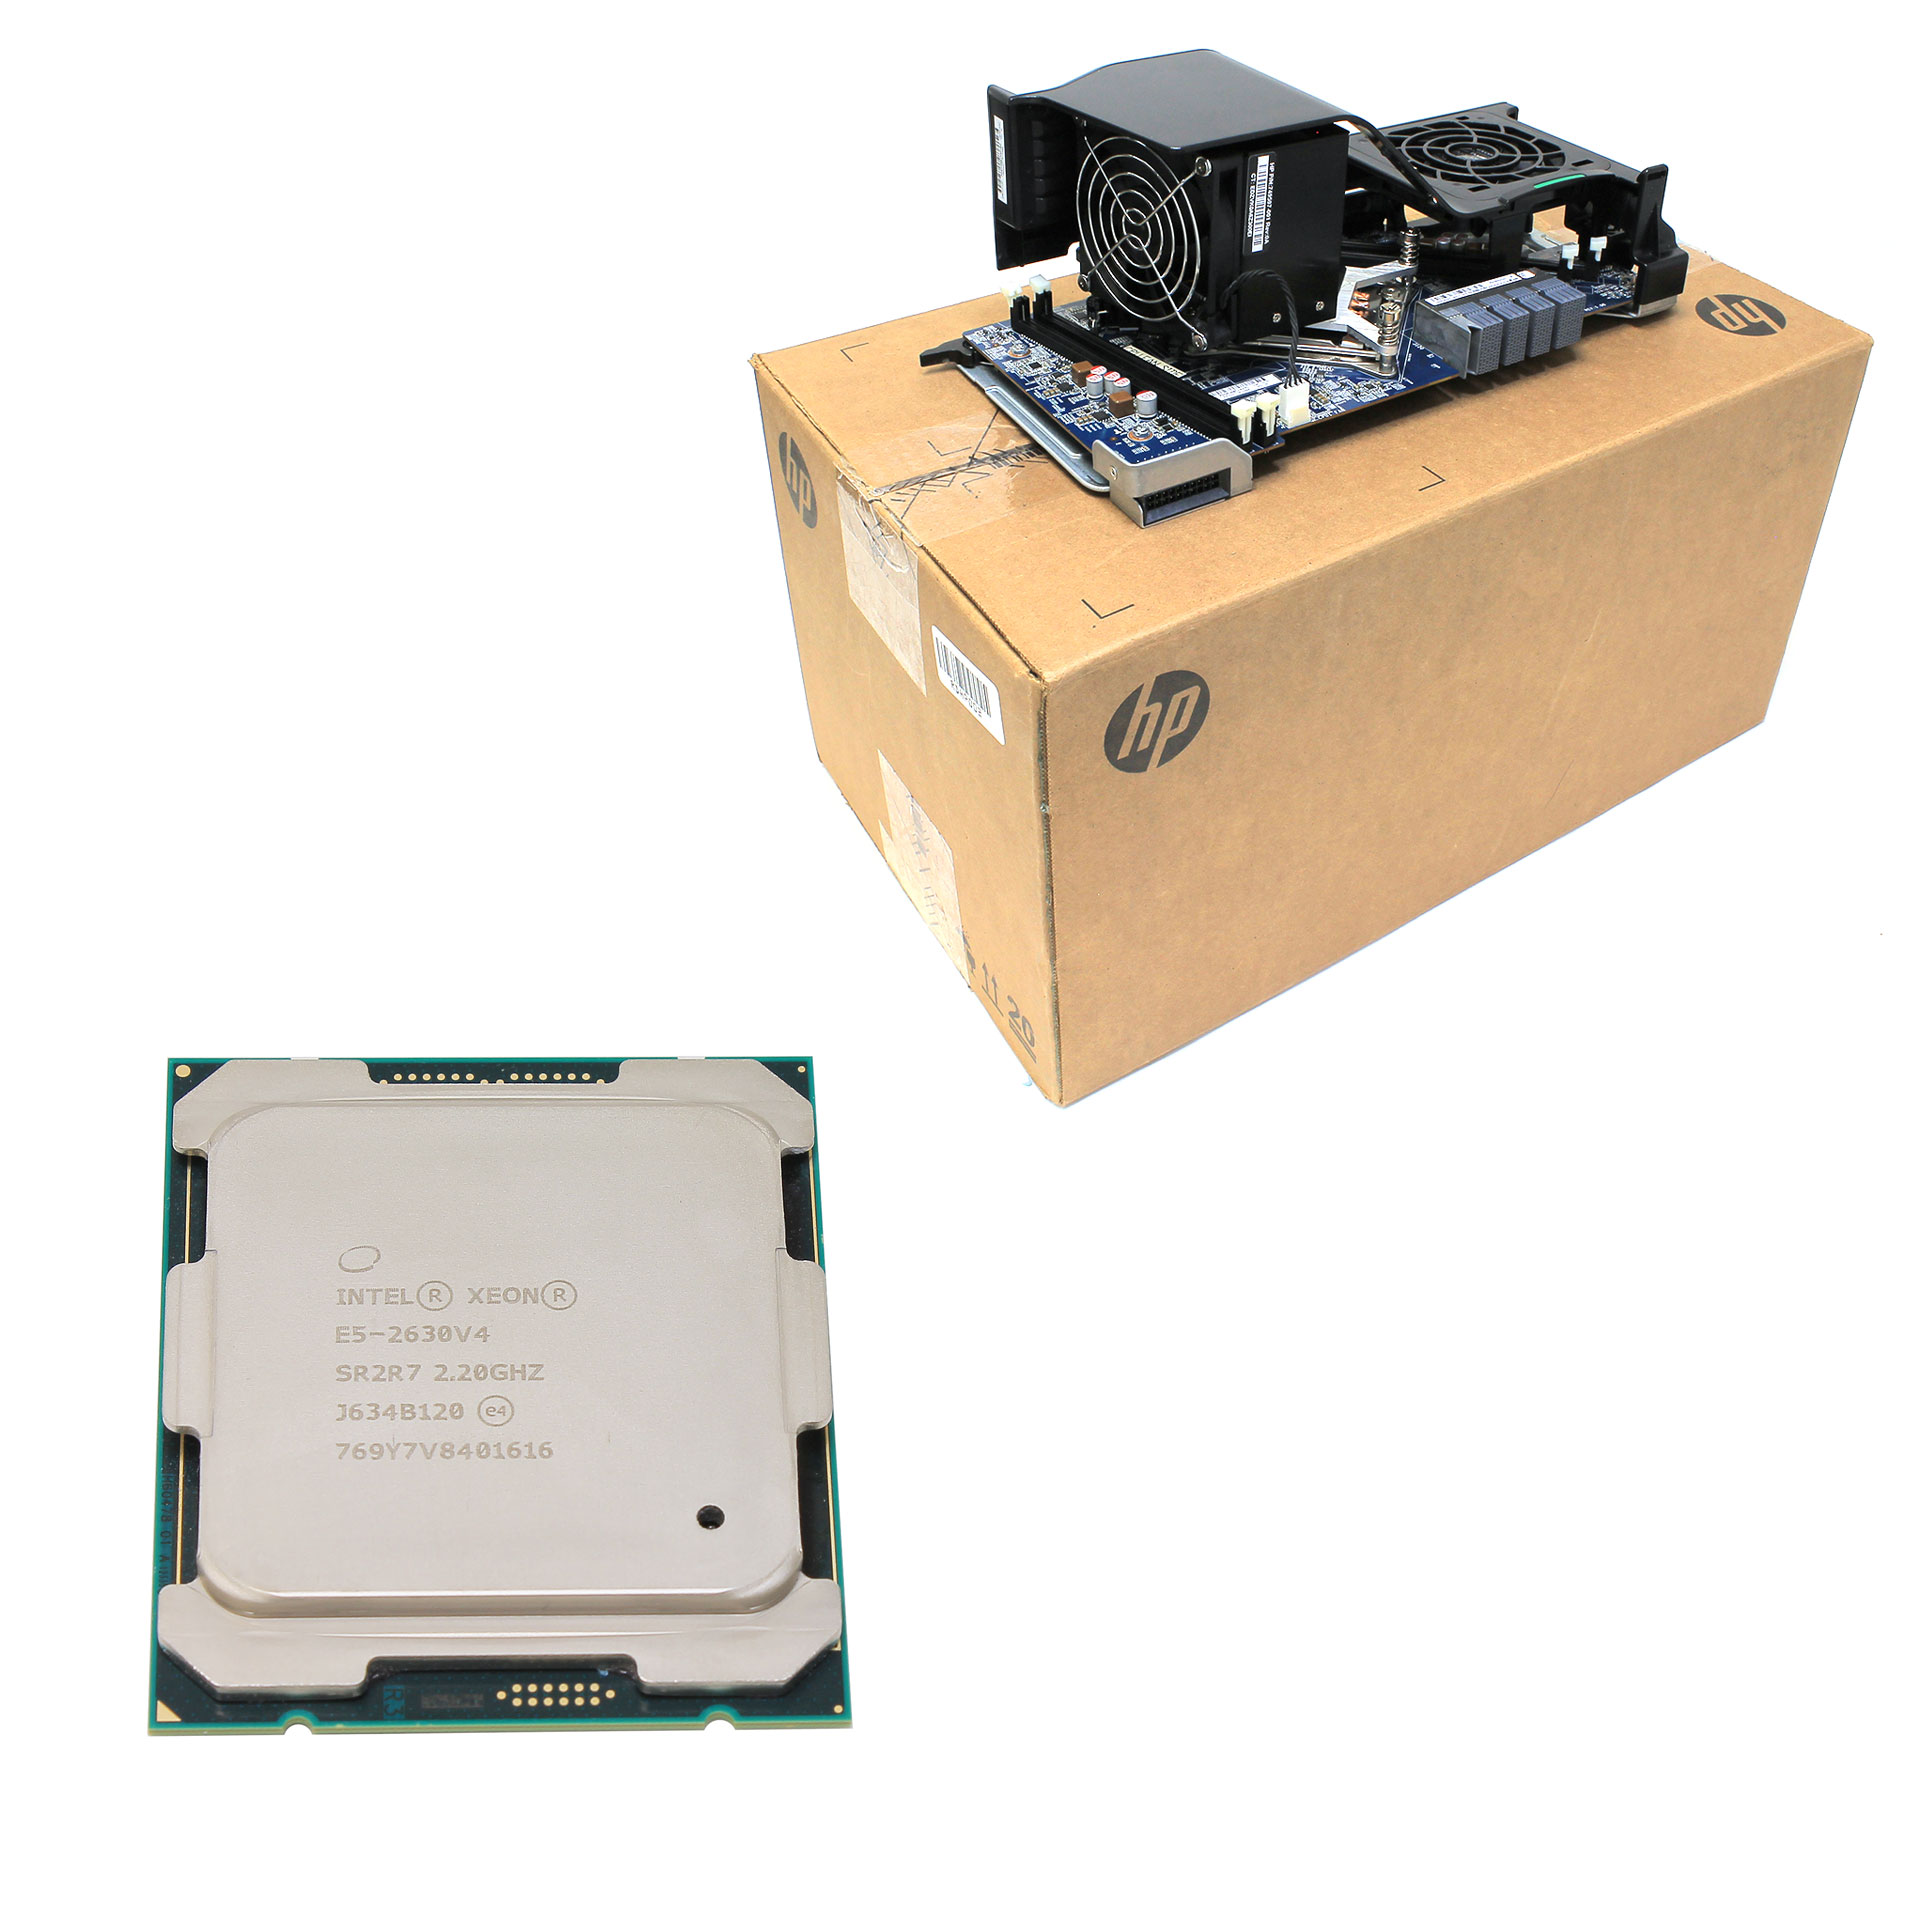 HP Z640 Upgrade KIT T9U14AT Xeon E5-2630v4+Riser 736520-001